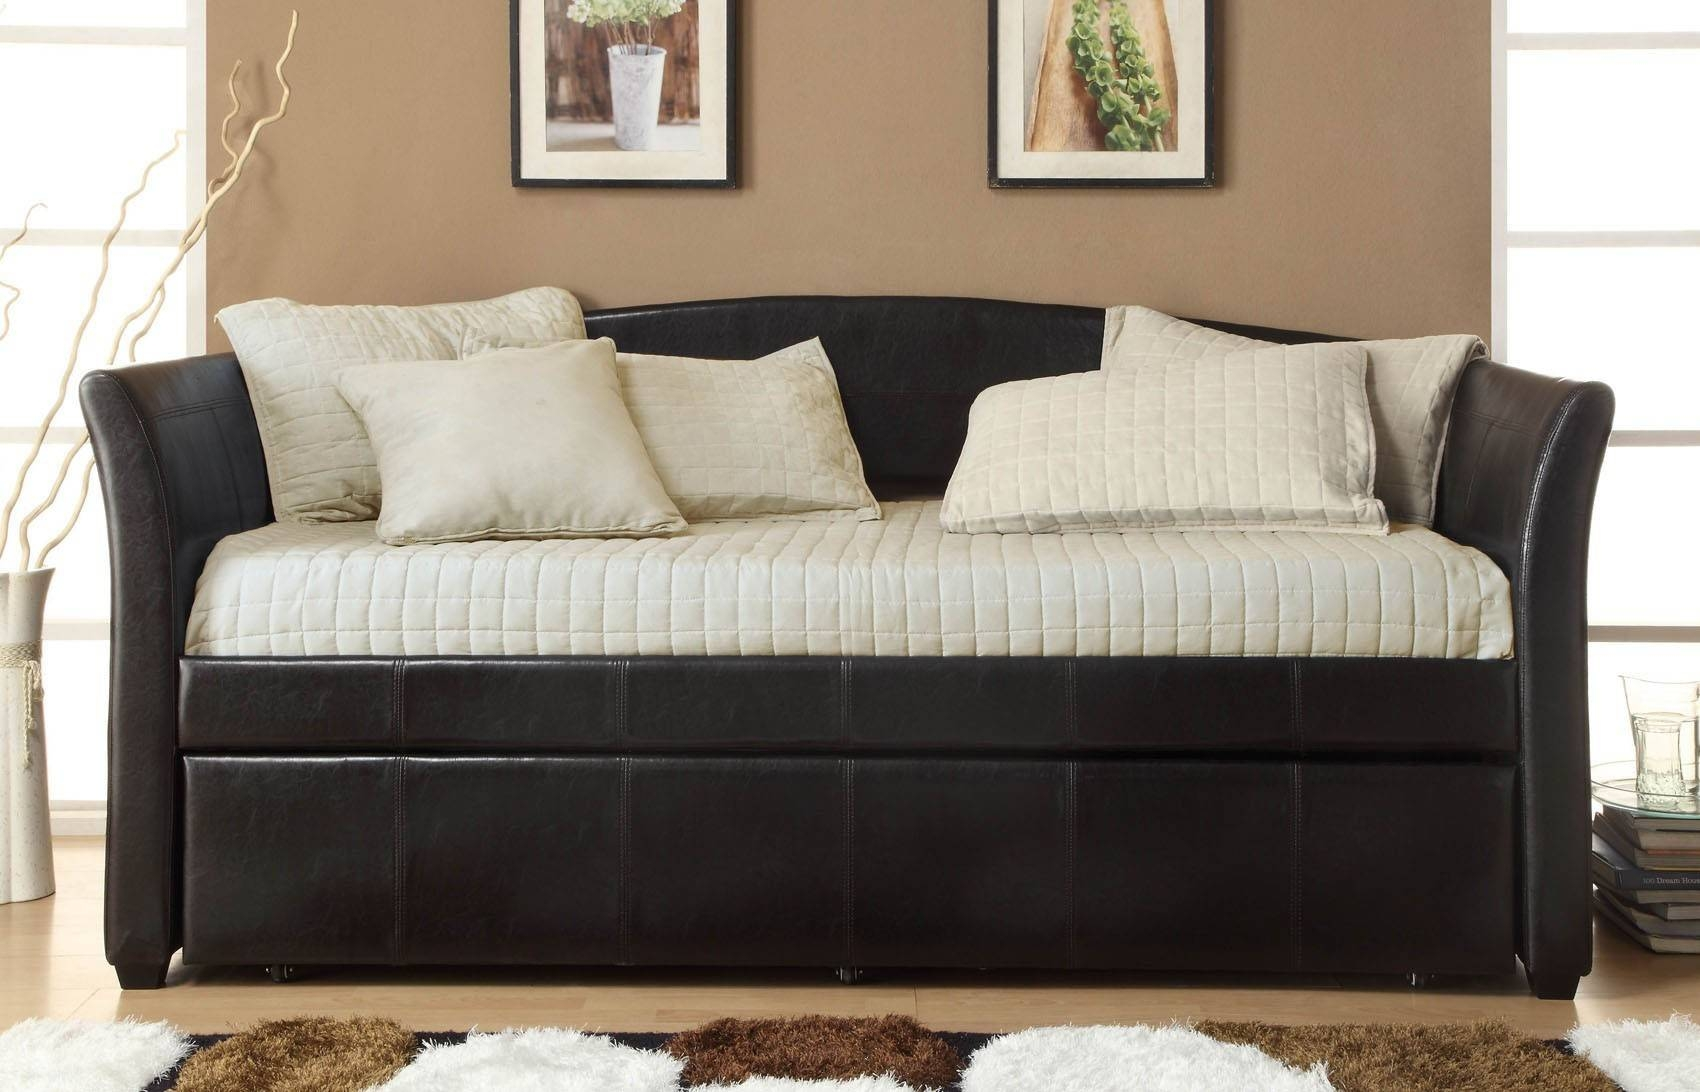 Bedroom Furniture Sets : Day Bed With Trundle Teen Daybed Daybed pertaining to Sofa Beds With Trundle (Image 3 of 15)